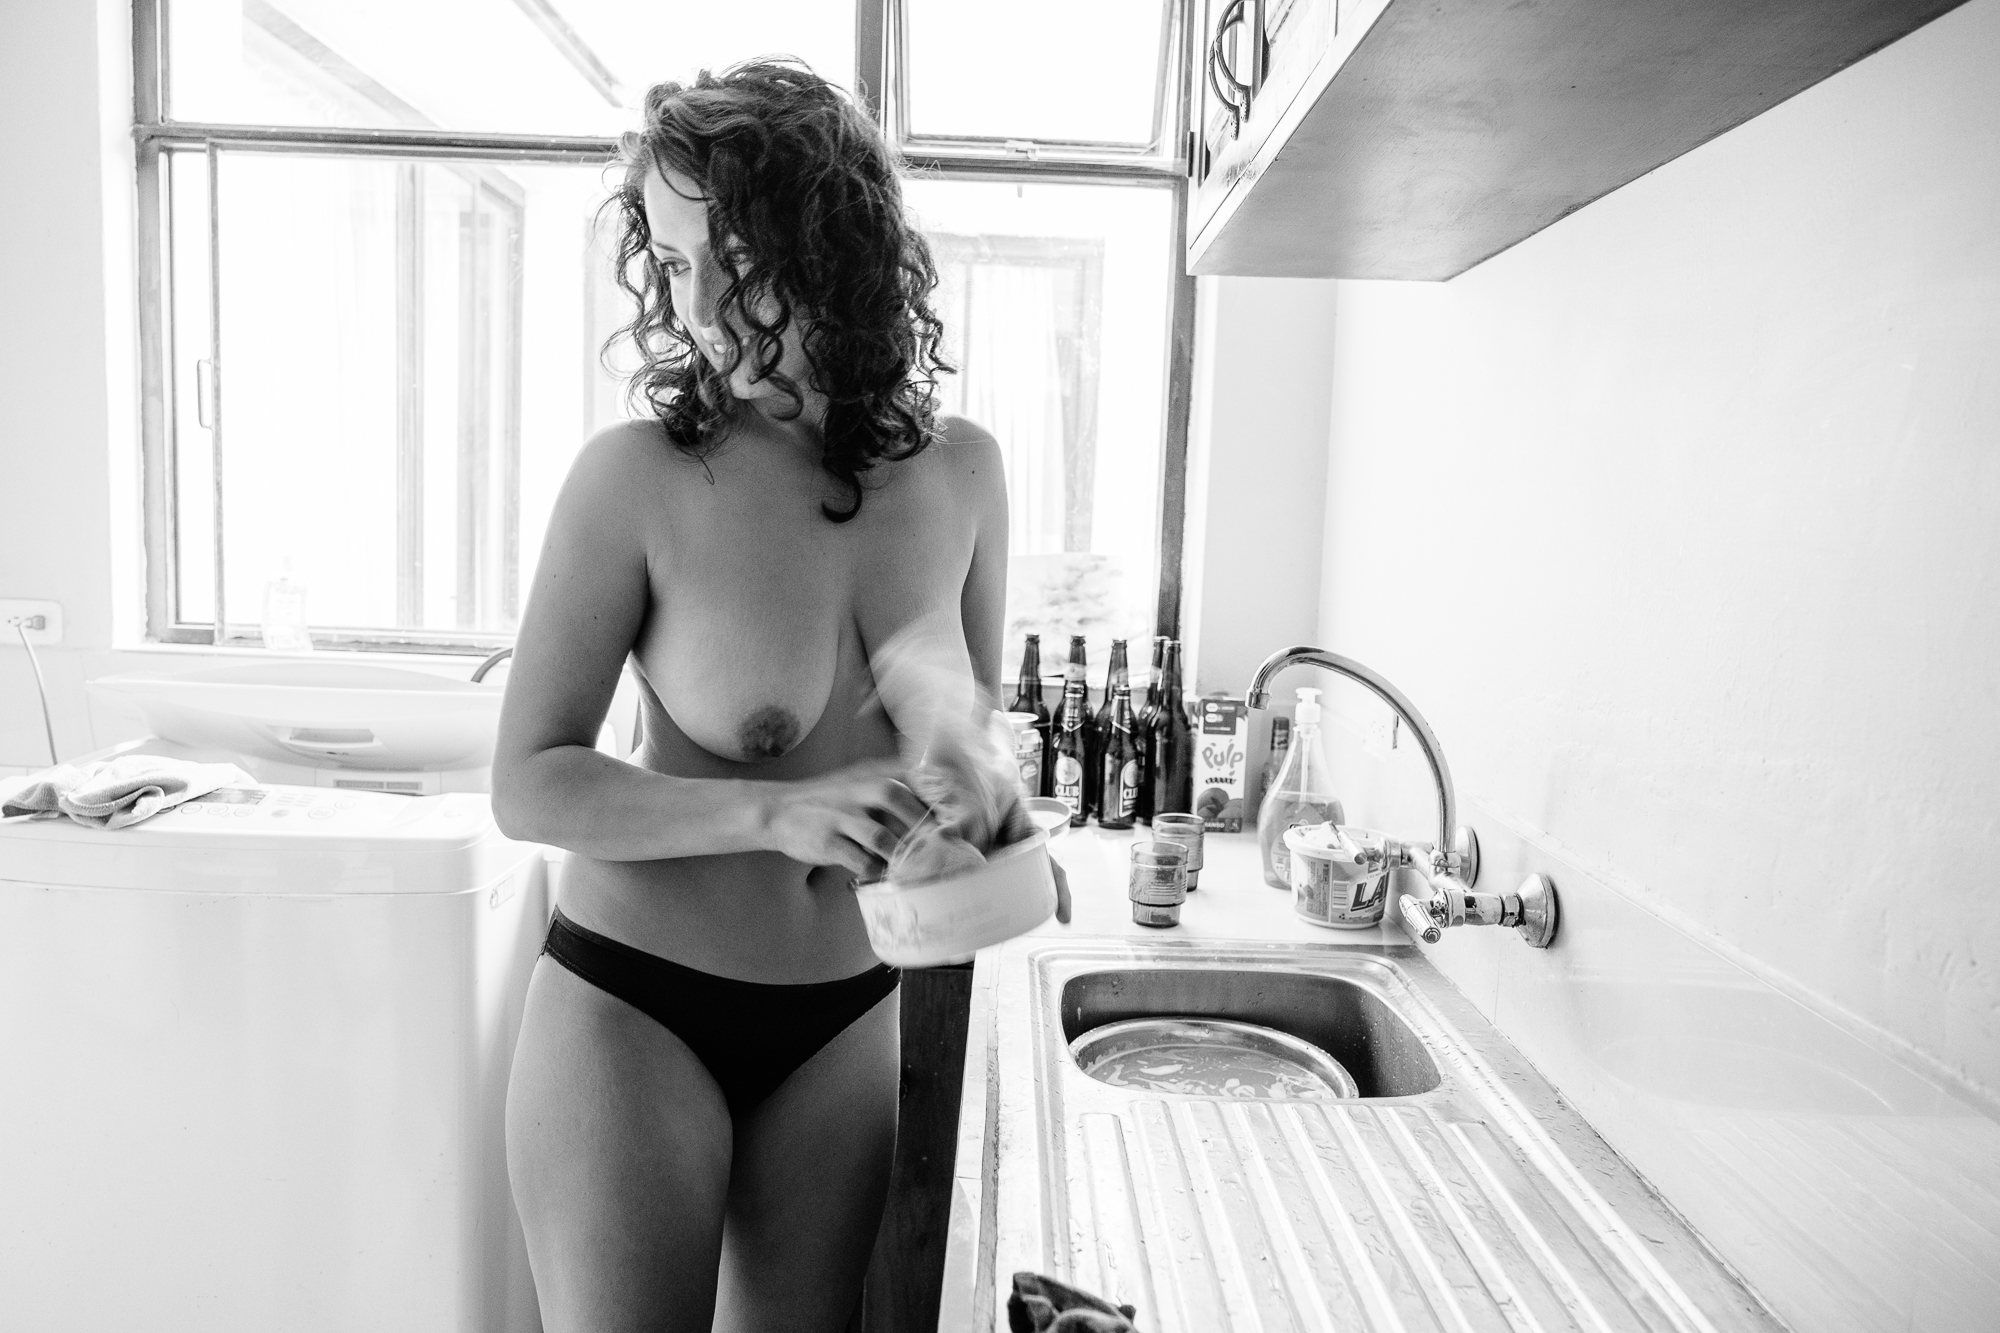 20161005__A Day In The Life_X-Pro2_0549.jpg